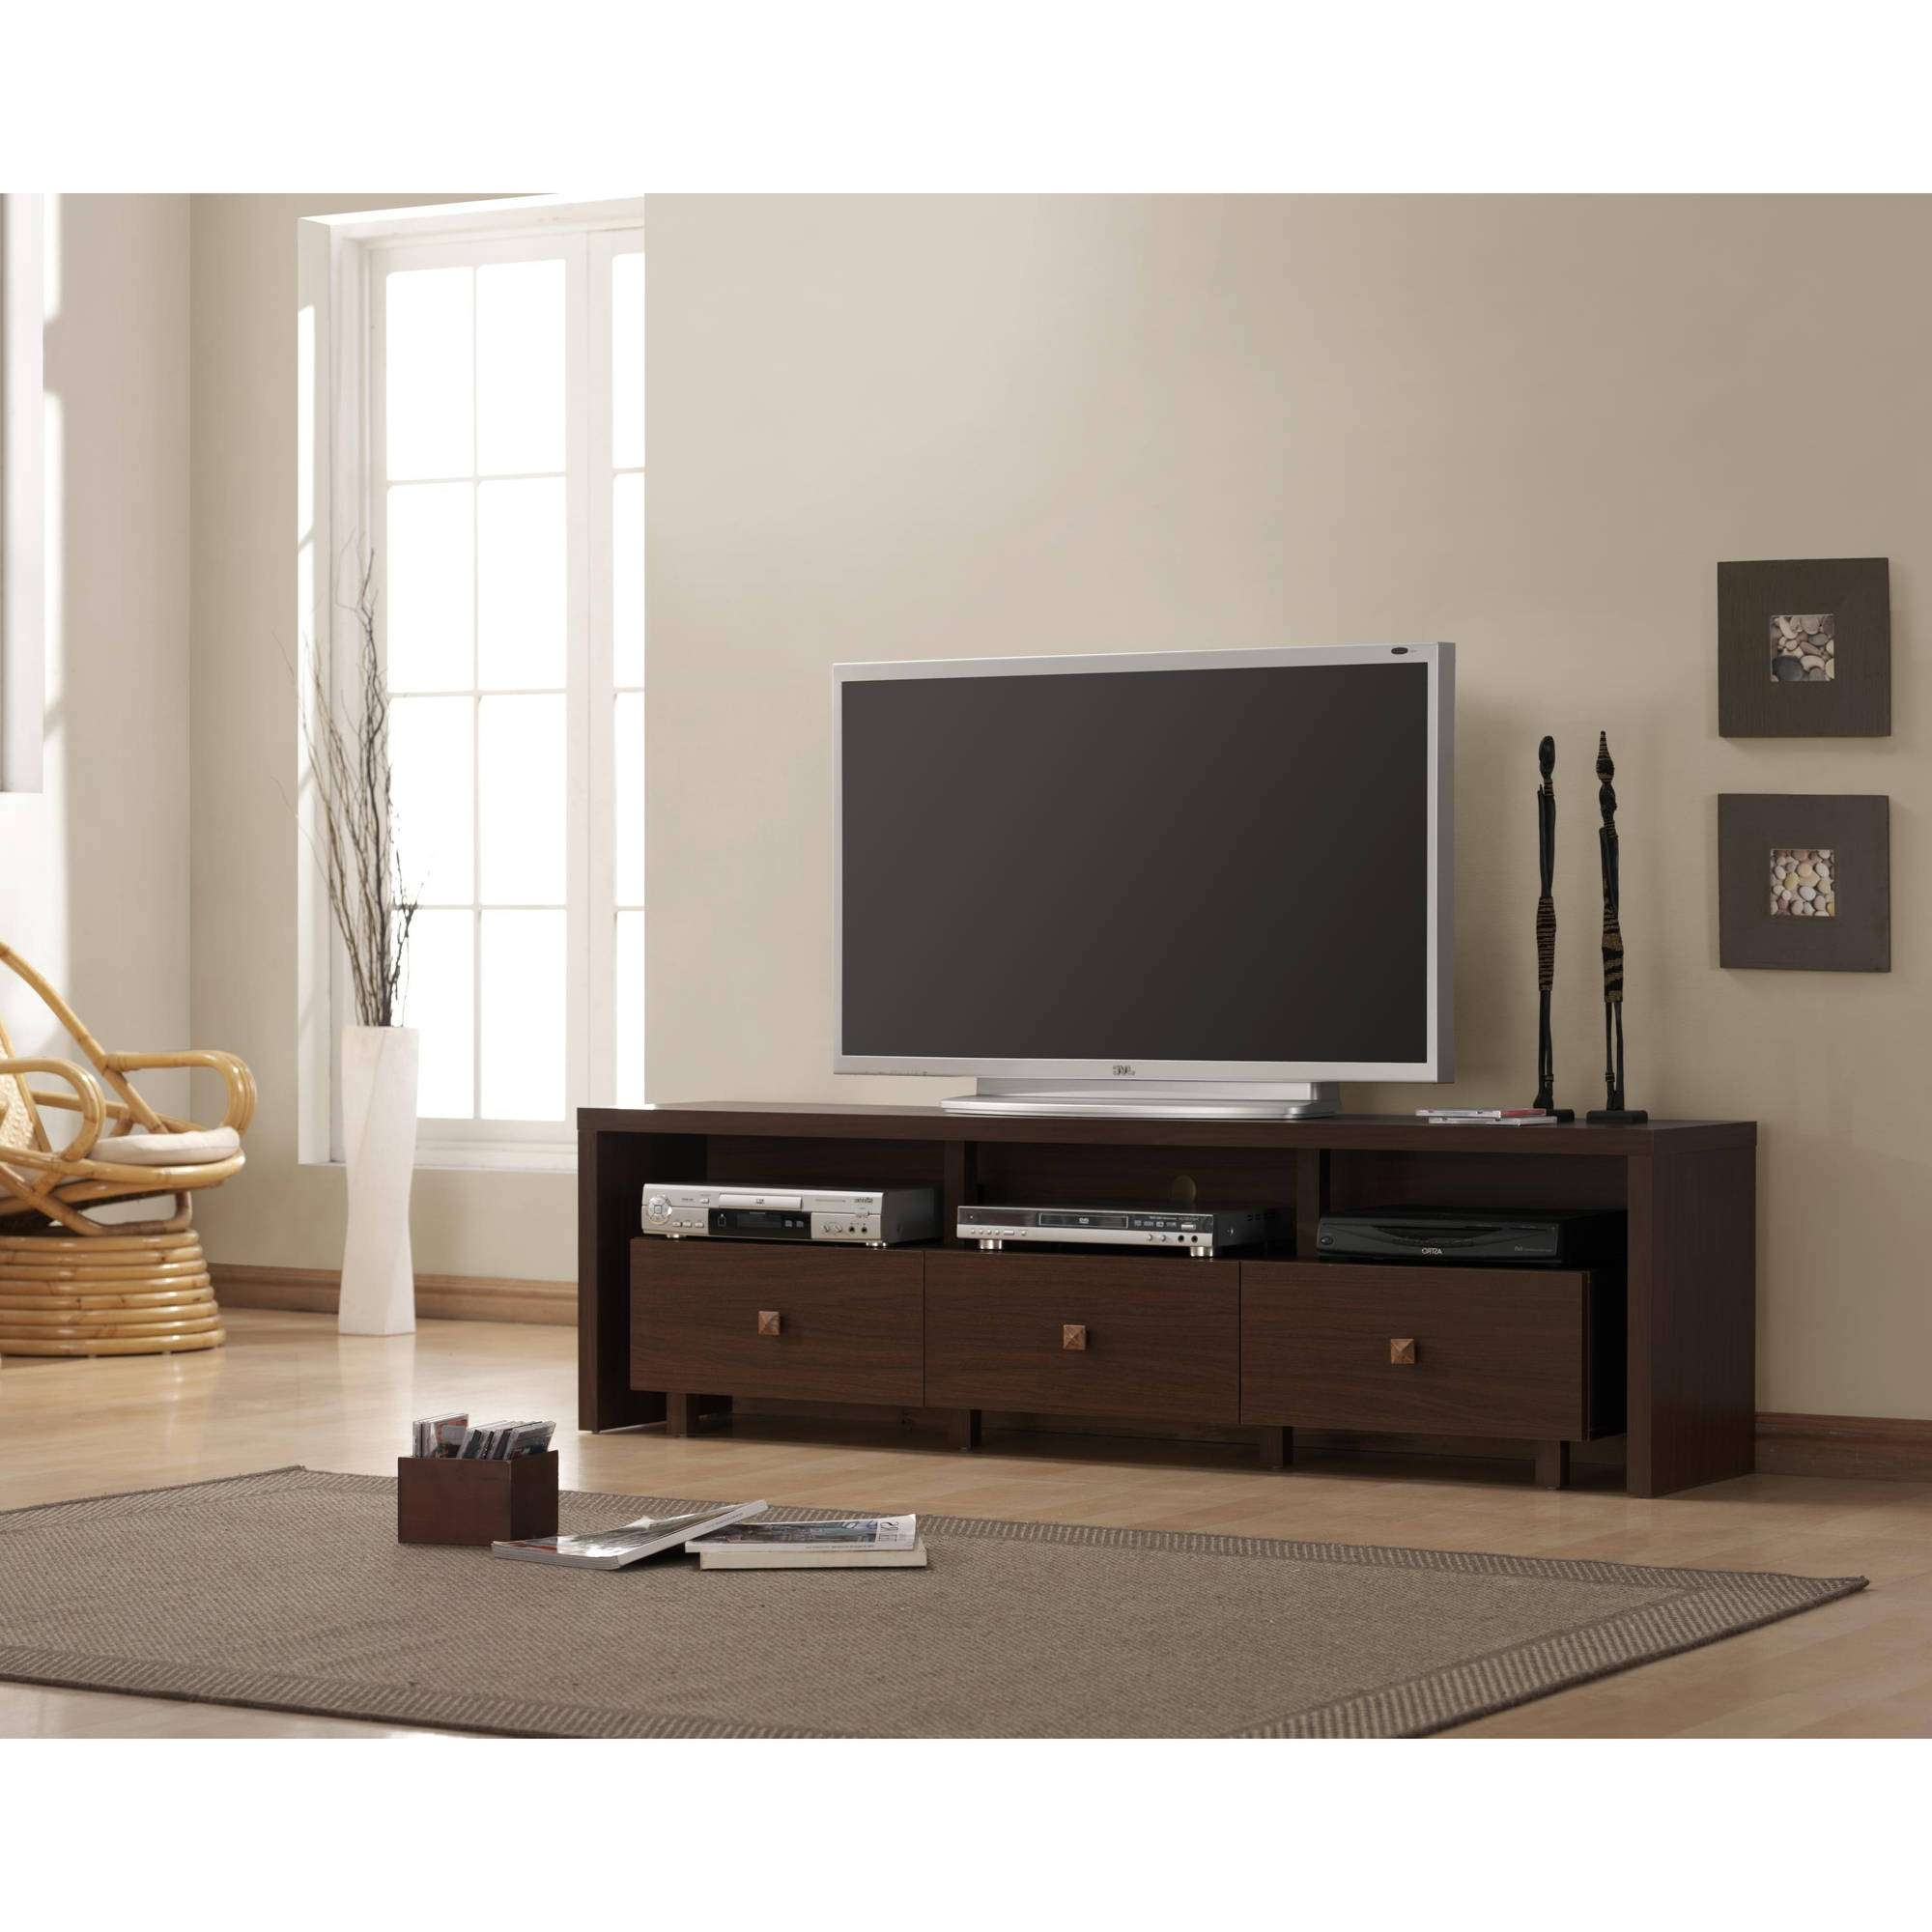 Dainty Tv Stand Entertainment Console Then Shelves Tv Stand Grey In Long Tv Stands Furniture (View 11 of 15)